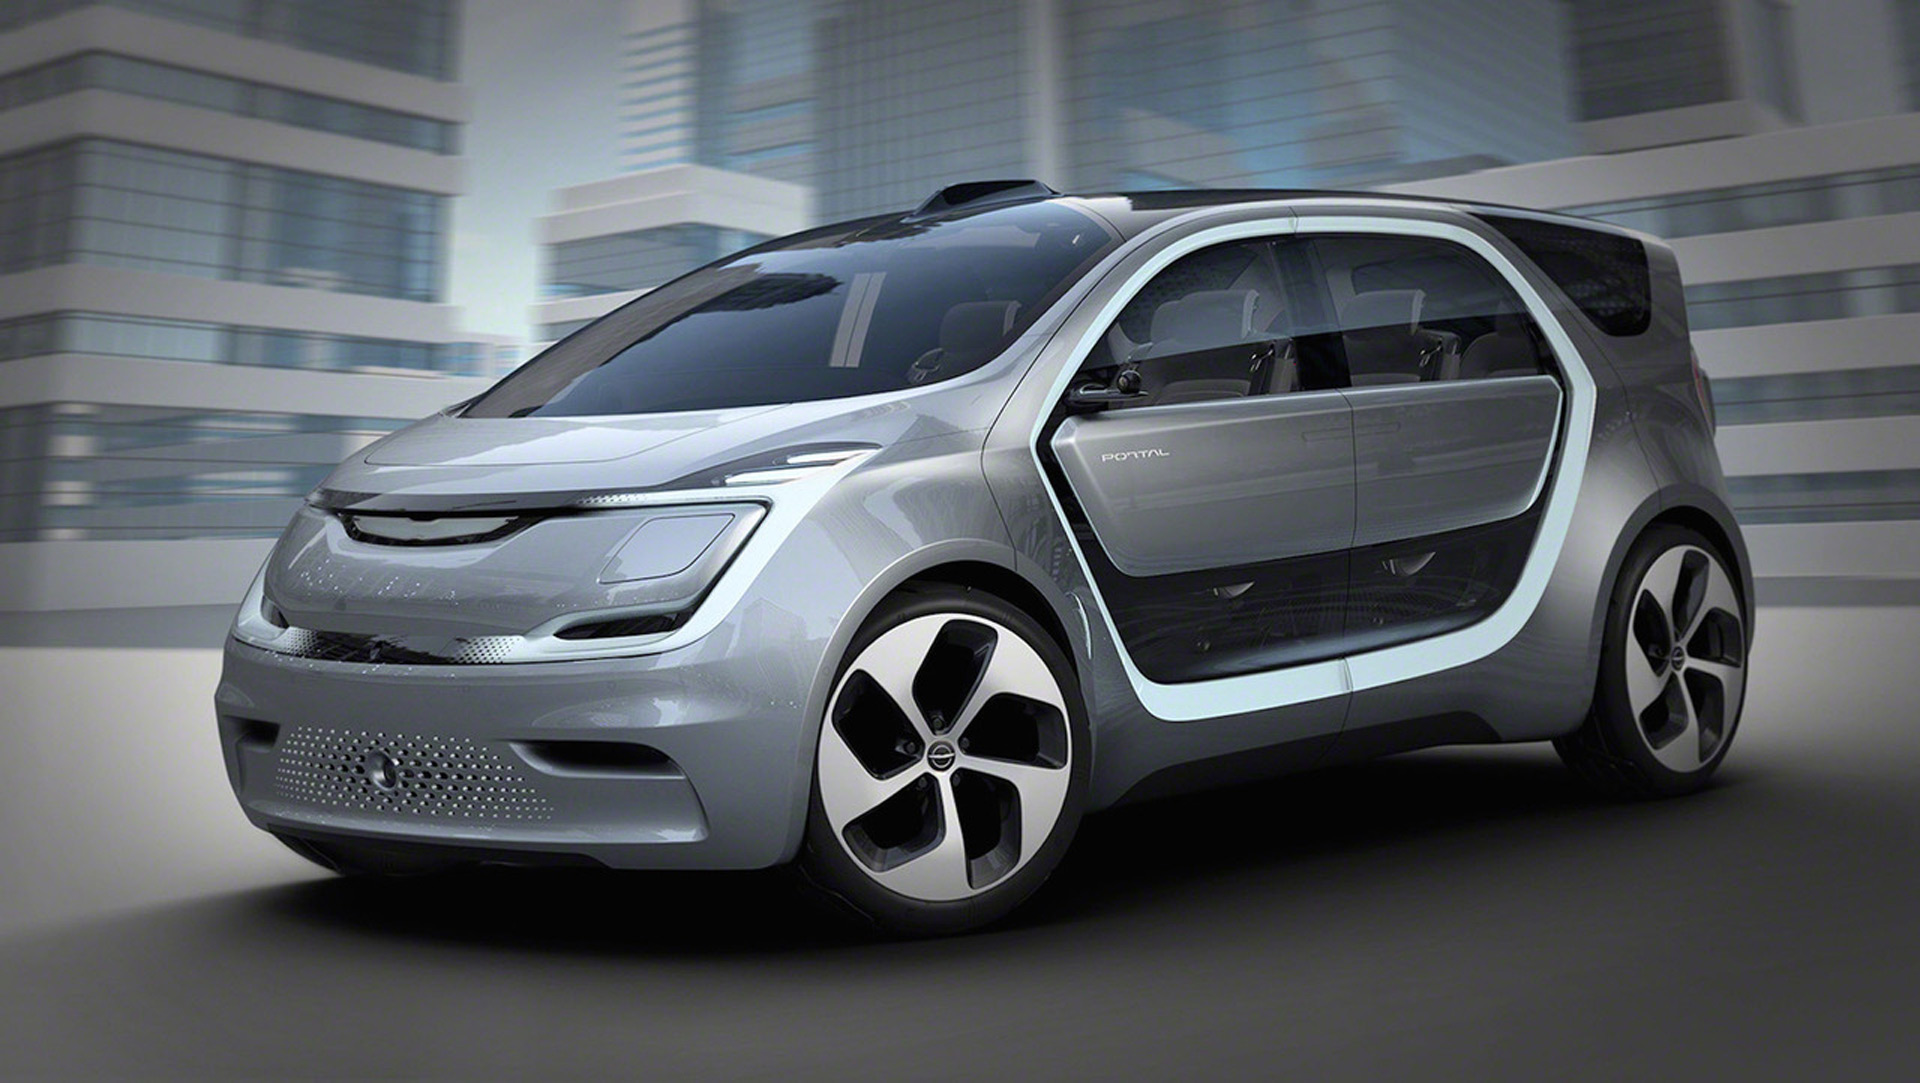 Chrysler Portal concept is an electric van with Level 3 self-driving capability